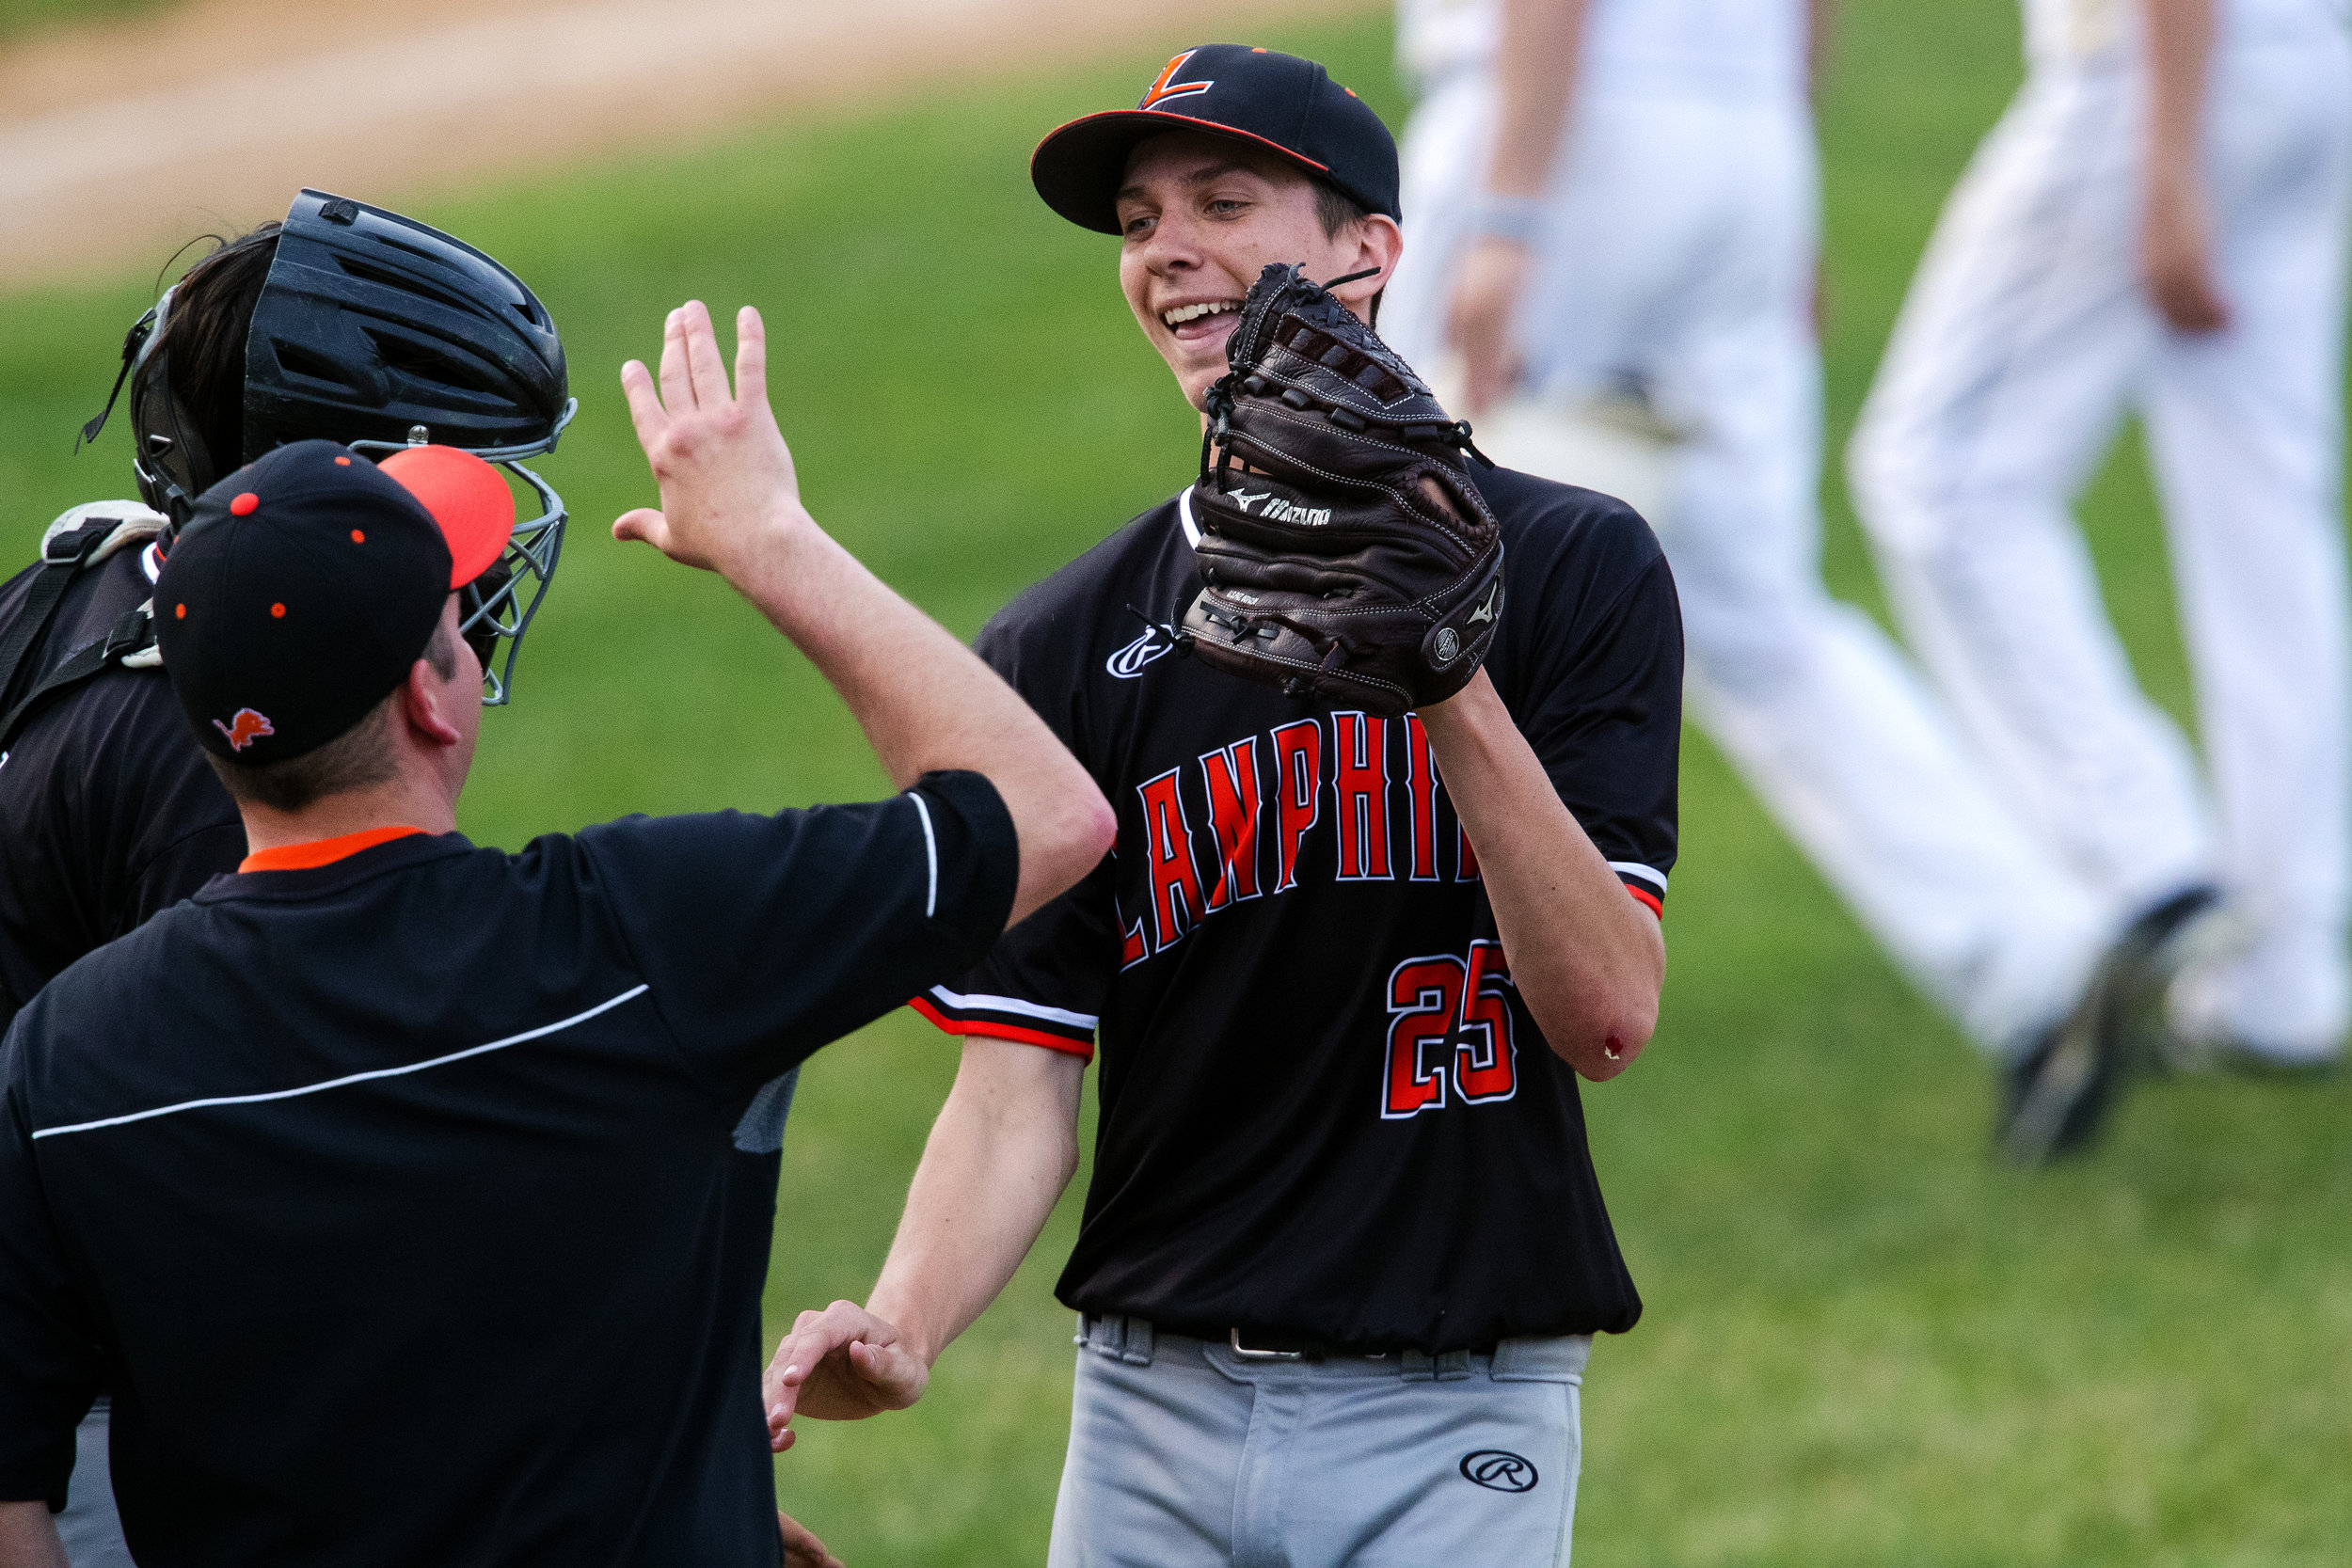 Lanphier's Austin Tomko's teammates welcome him to the dugout after his diving outfield catch against Sacred Heart-Griffin during City Series baseball at Robin Roberts Stadium Wednesday, May 2, 2018. [Ted Schurter/The State Journal-Register]